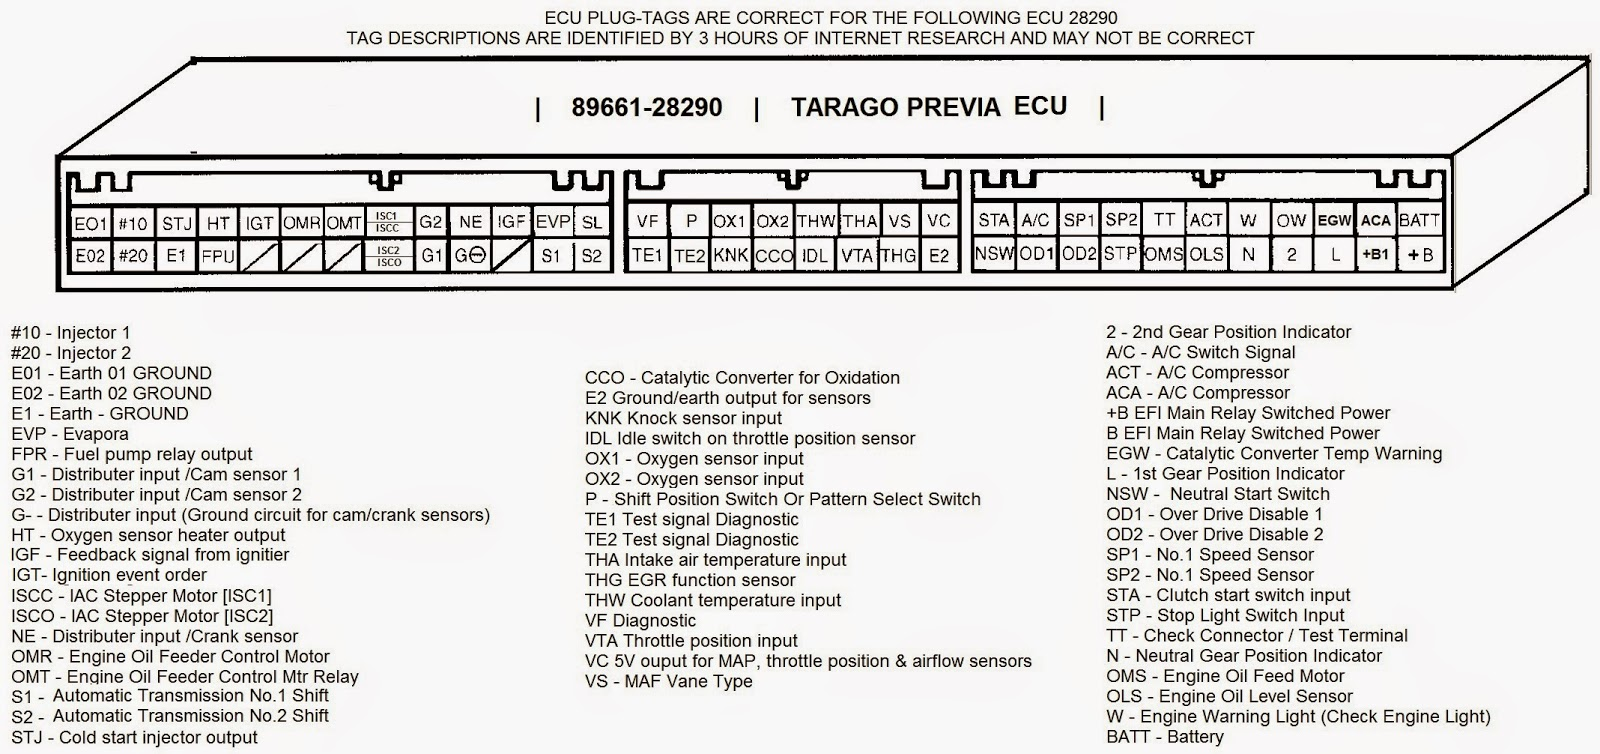 1997 mazda mpv engine diagram wiring library 2001 Mazda Millenia Engine Diagram 1997 mazda mpv engine diagram